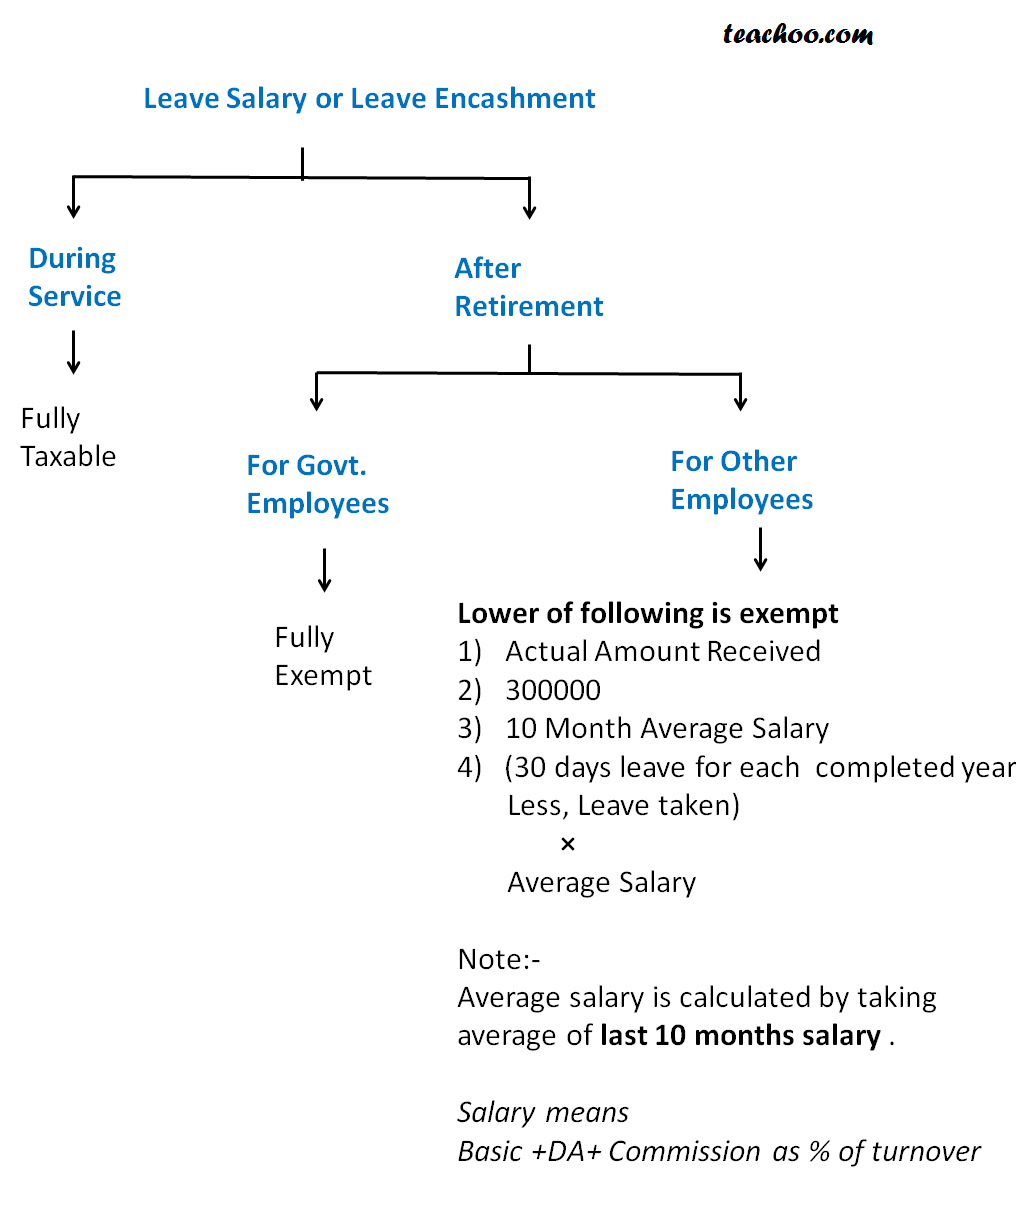 leave salary enchashment exemption.png